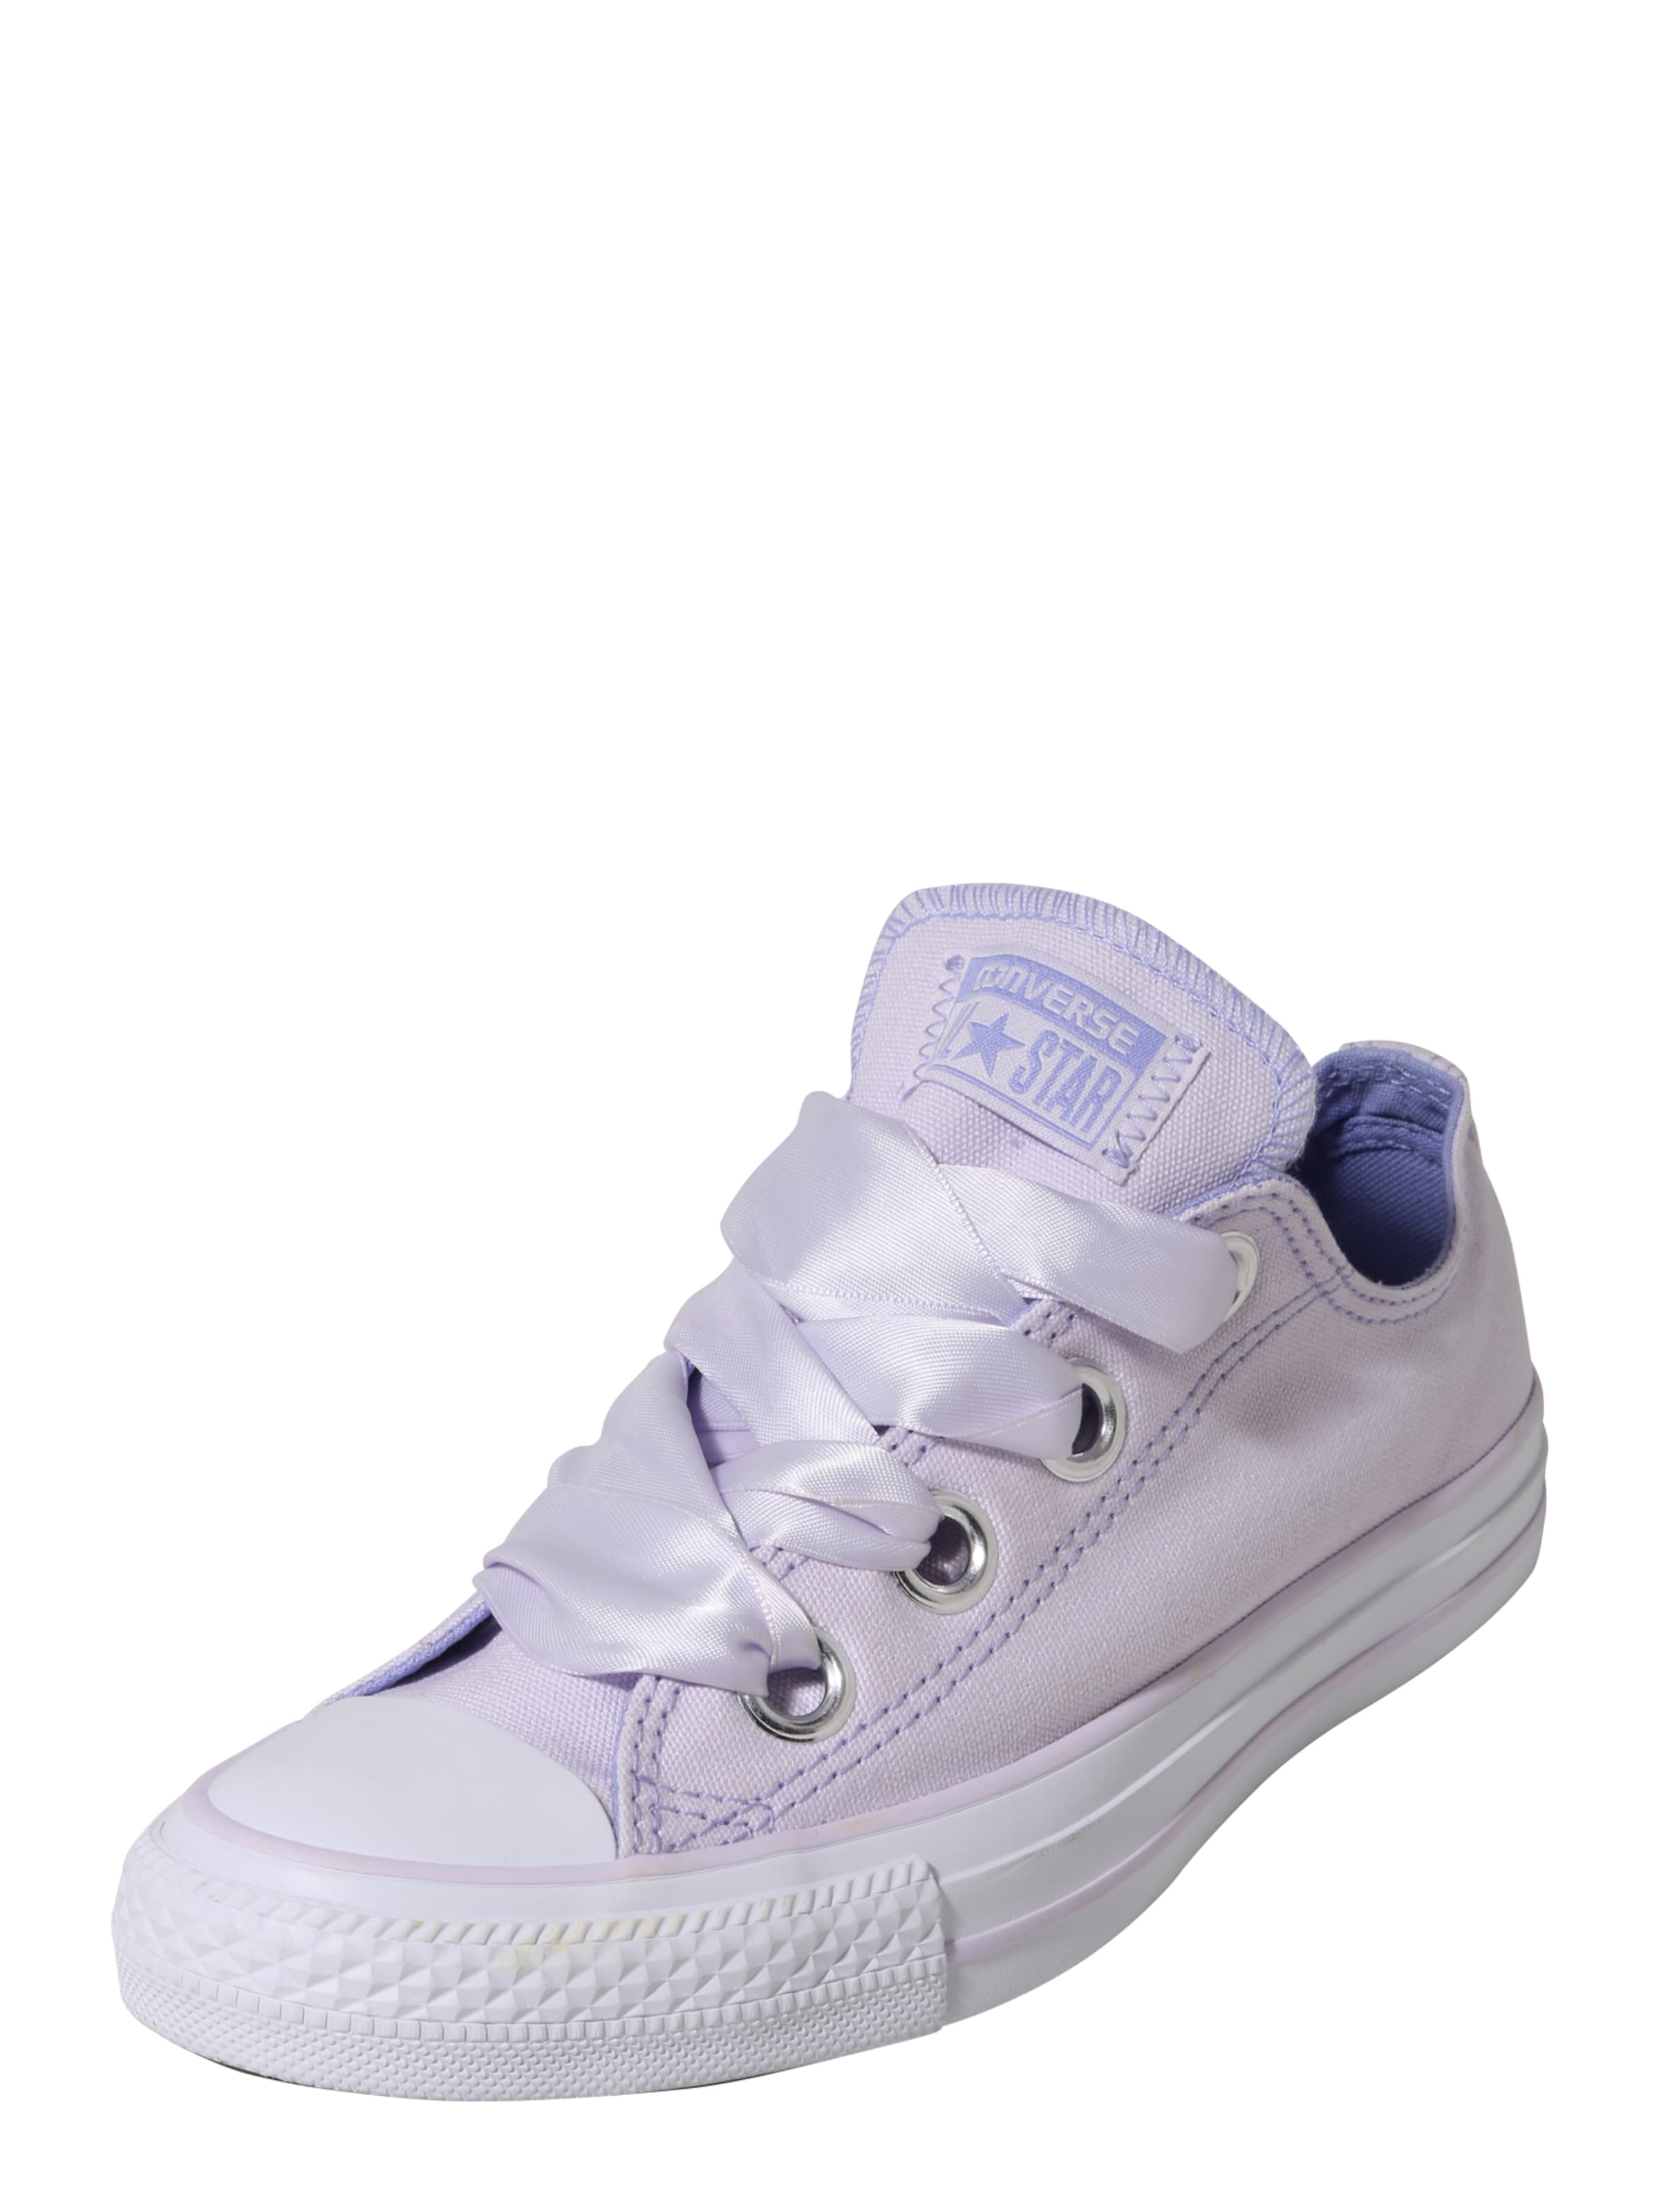 CONVERSE | Turnschuhe BIG CHUCK TAYLOR ALL STAR BIG Turnschuhe EYELETS - OX 8fe1bd